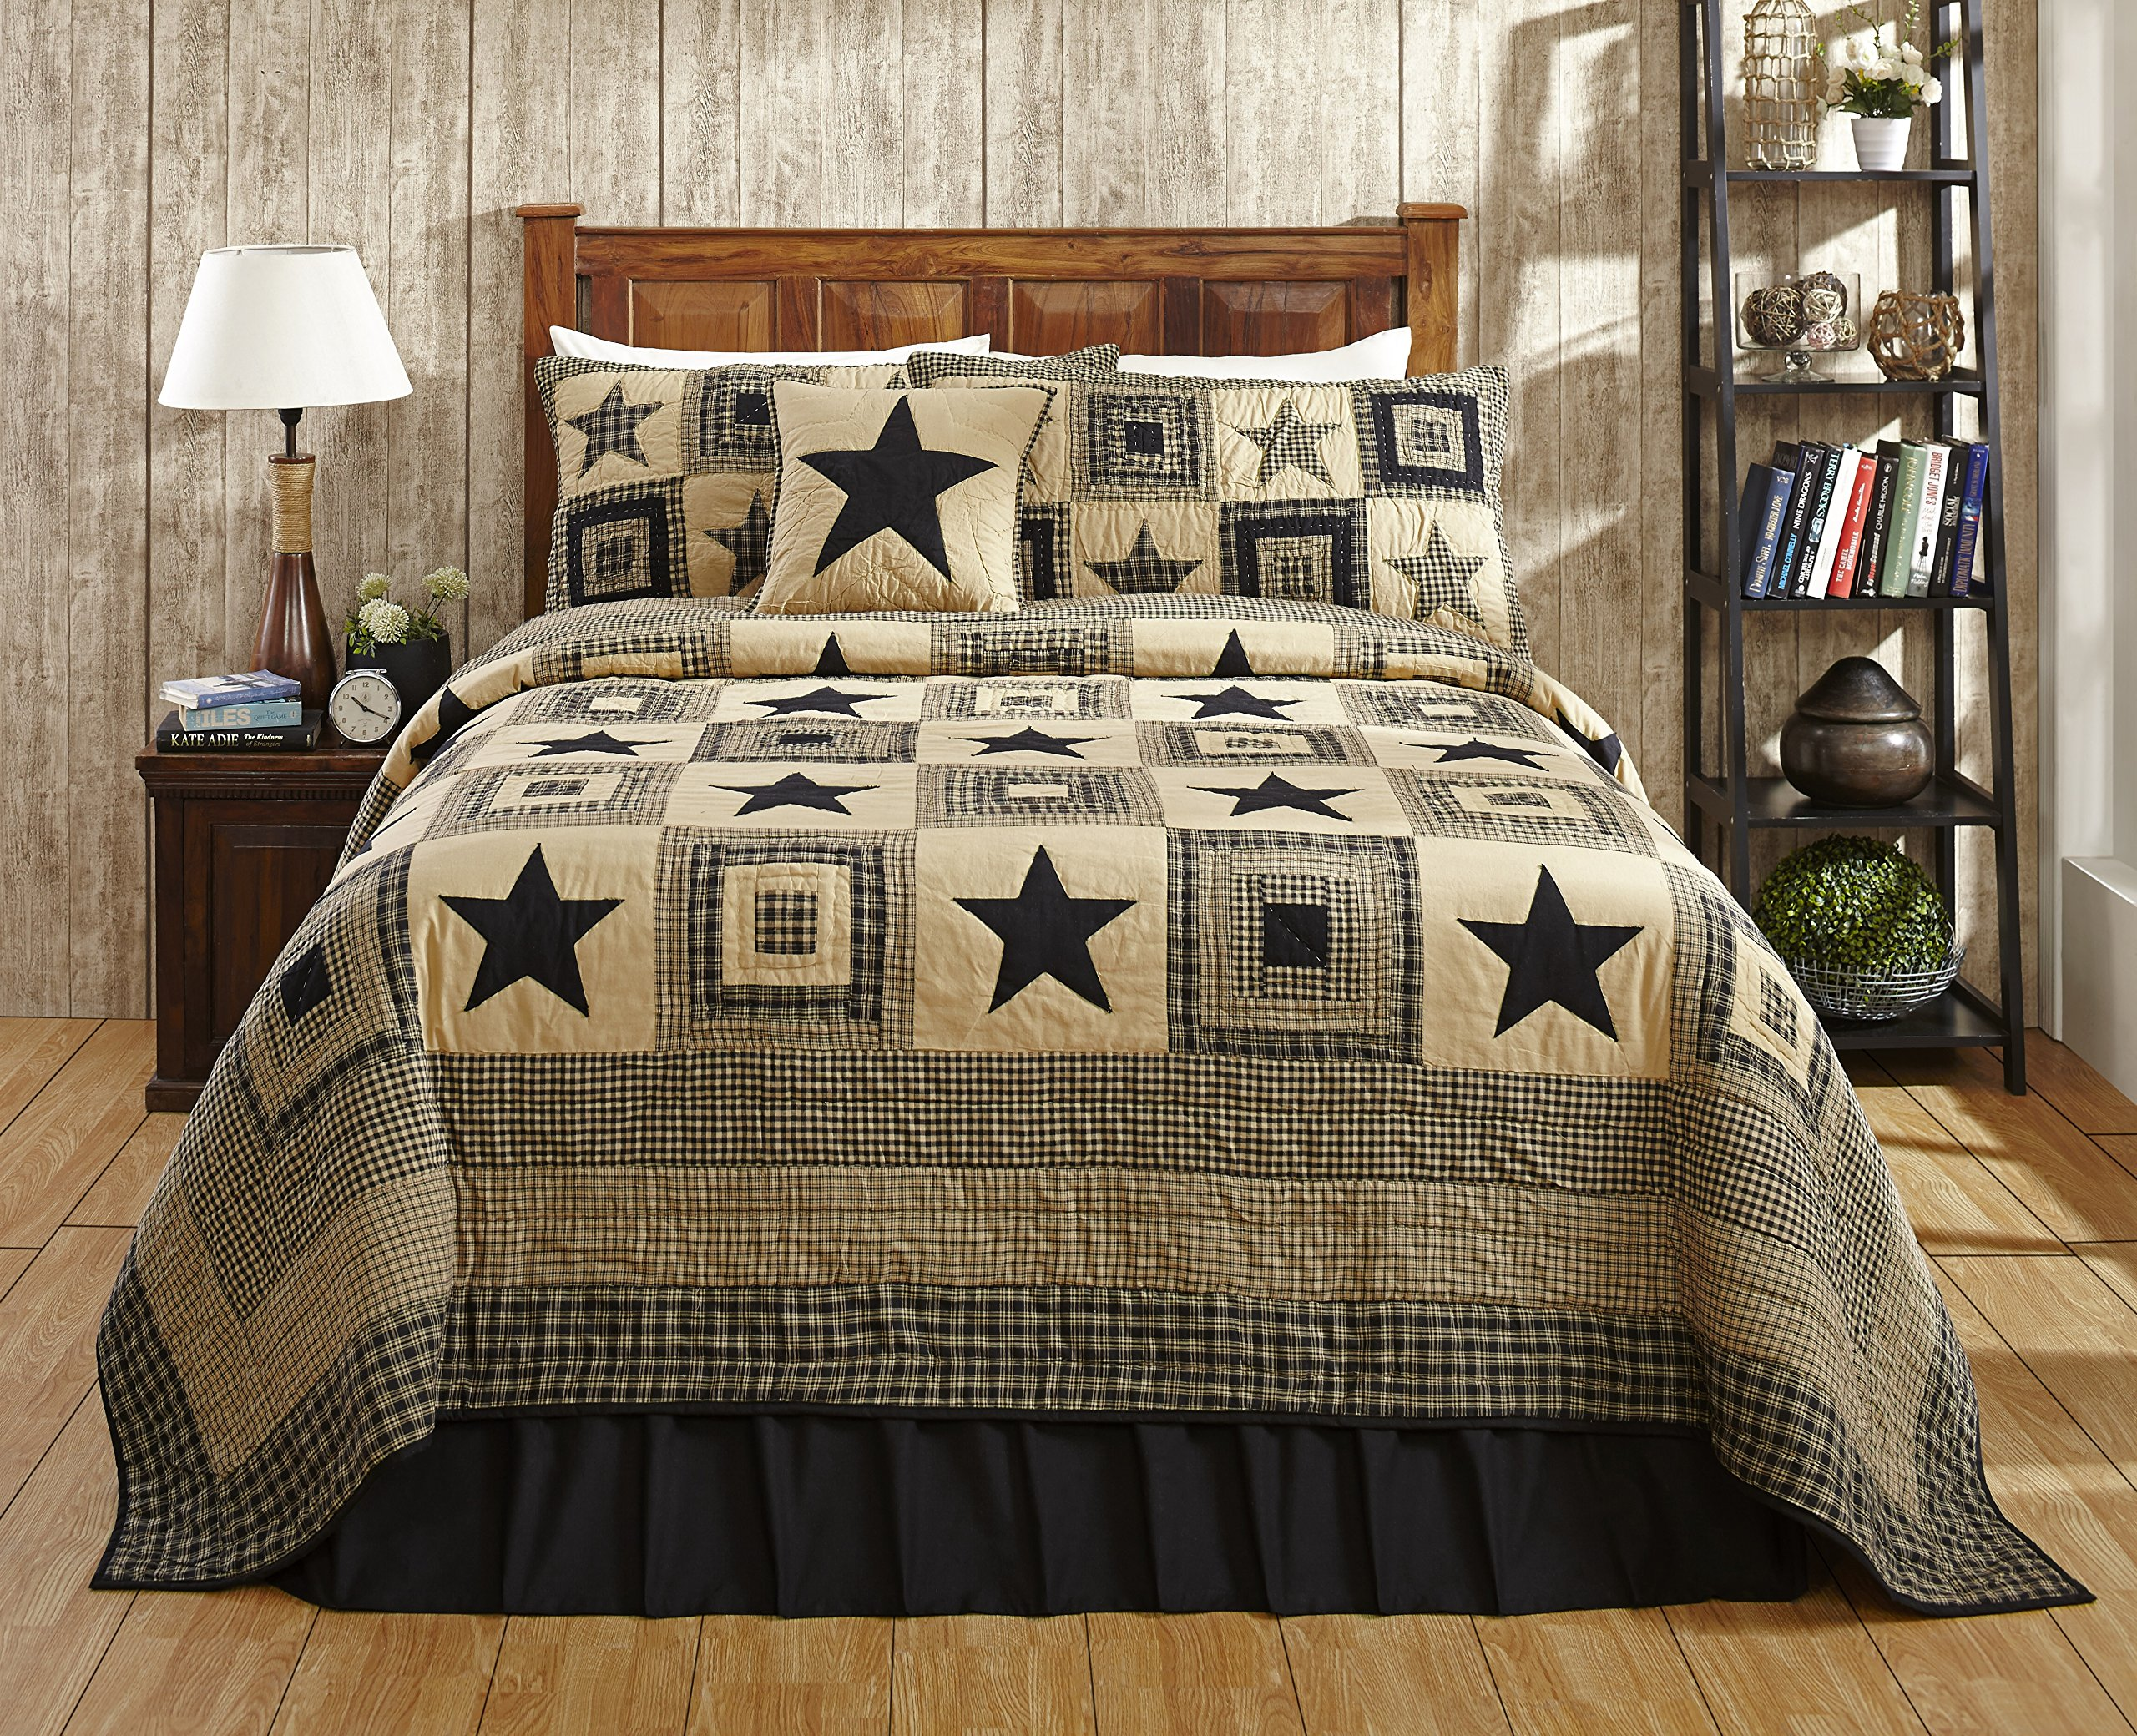 Colonial Star Black and Tan Primitive Country Quilt Set - 5 Piece (Twin (4 pc)) by Olivia's Heartland